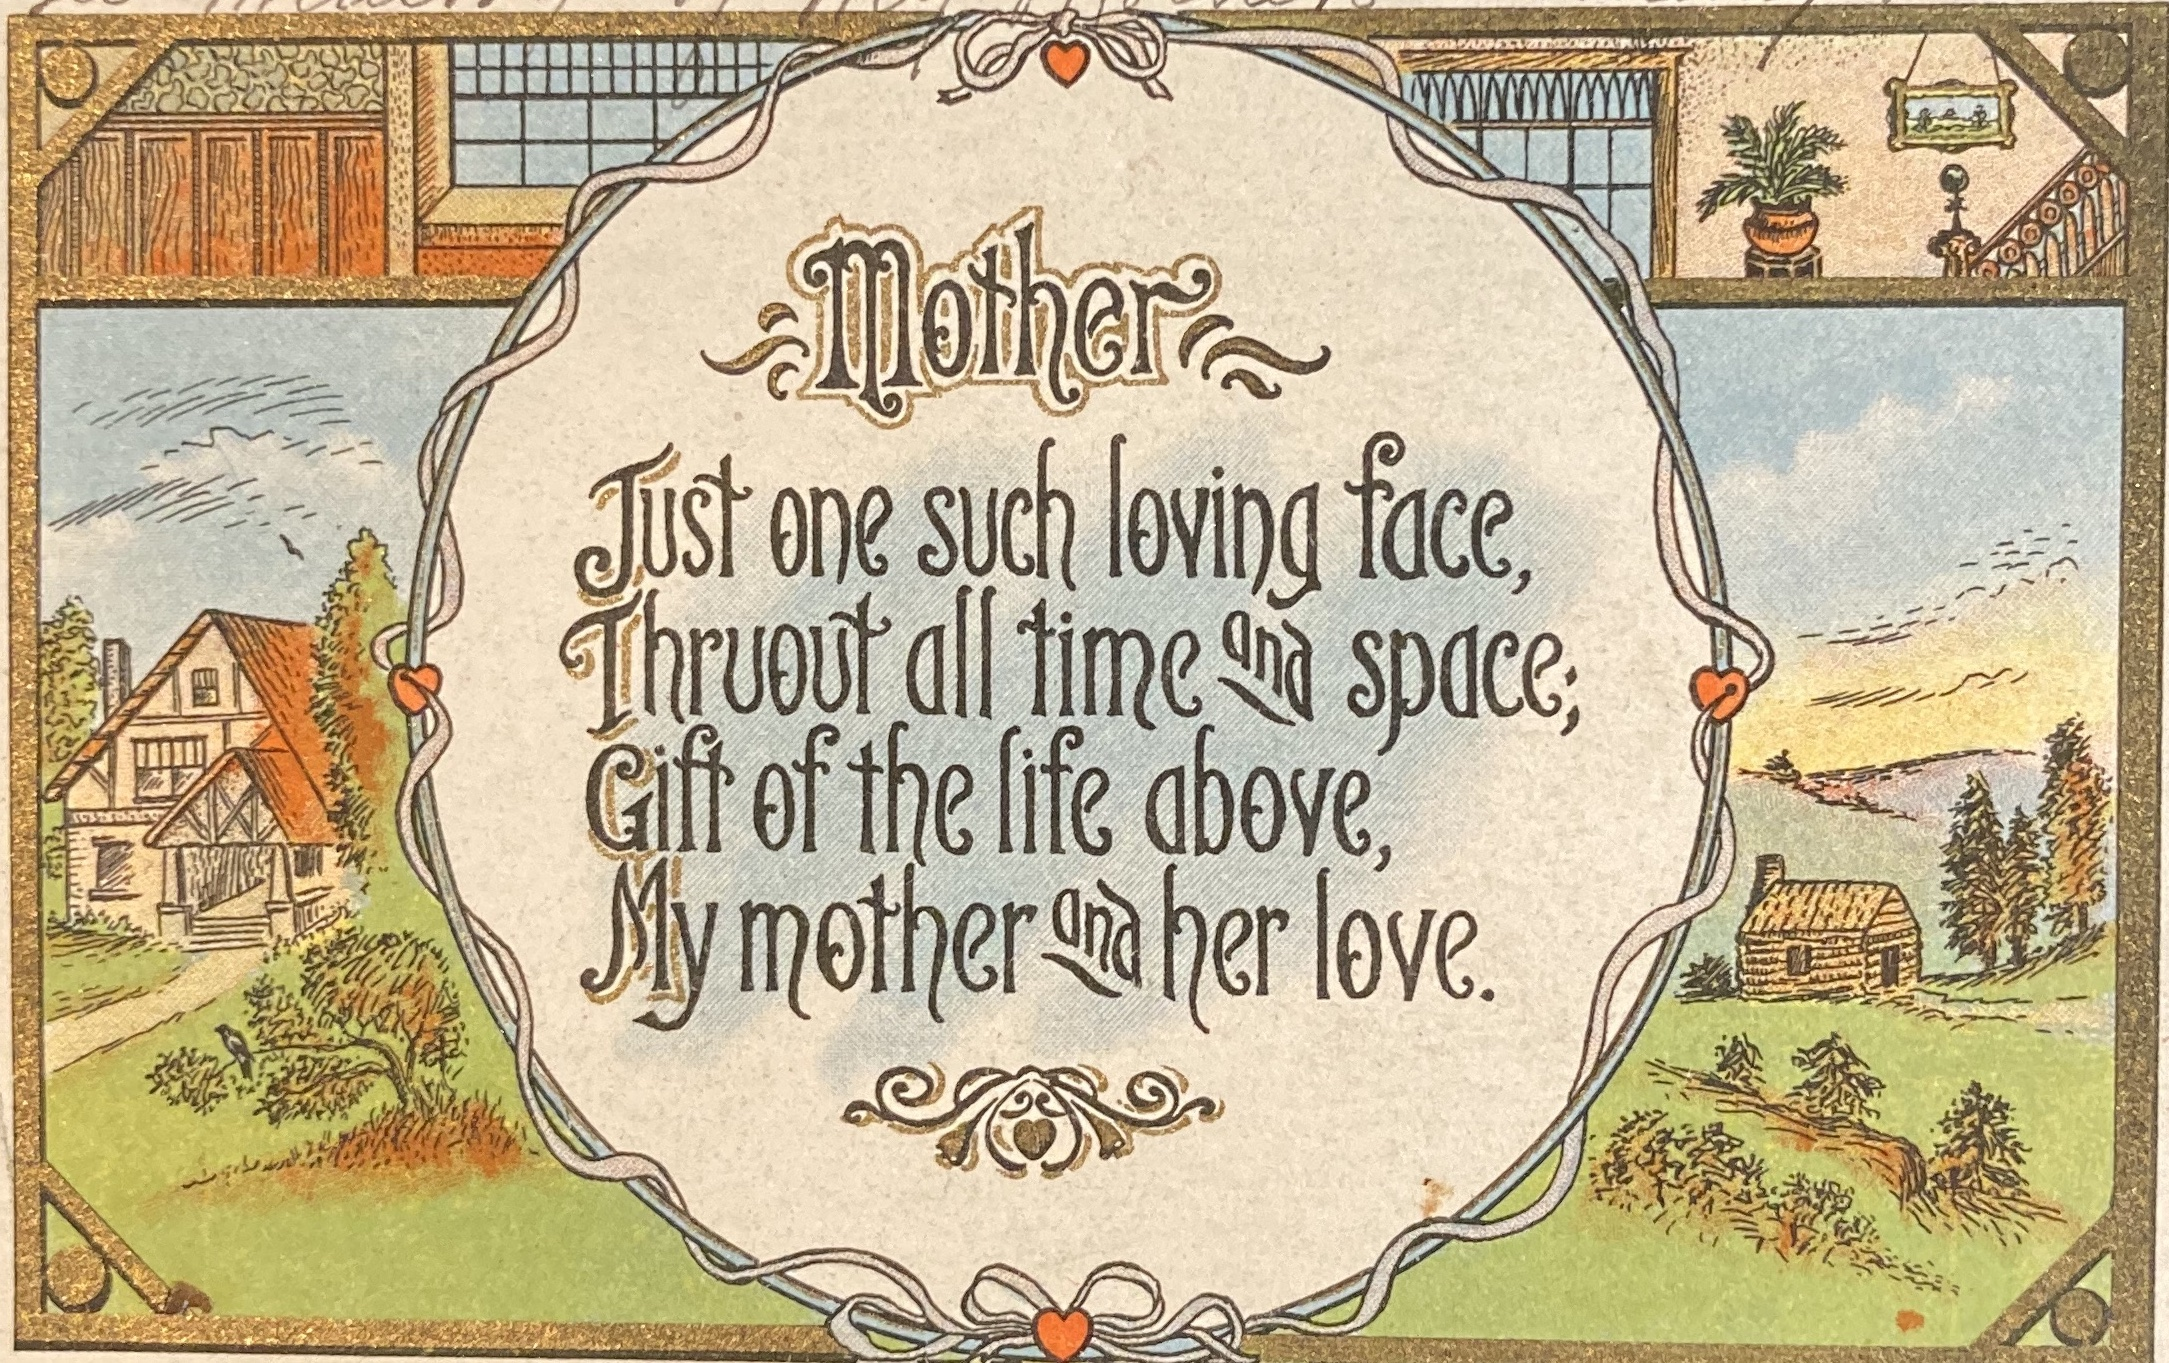 A Mother's Day postcard printed in 1913, purchased at Sweet William Antique Mall in Colorado Springs. Sweet William Antique Mall is an underwriter of KRCC.